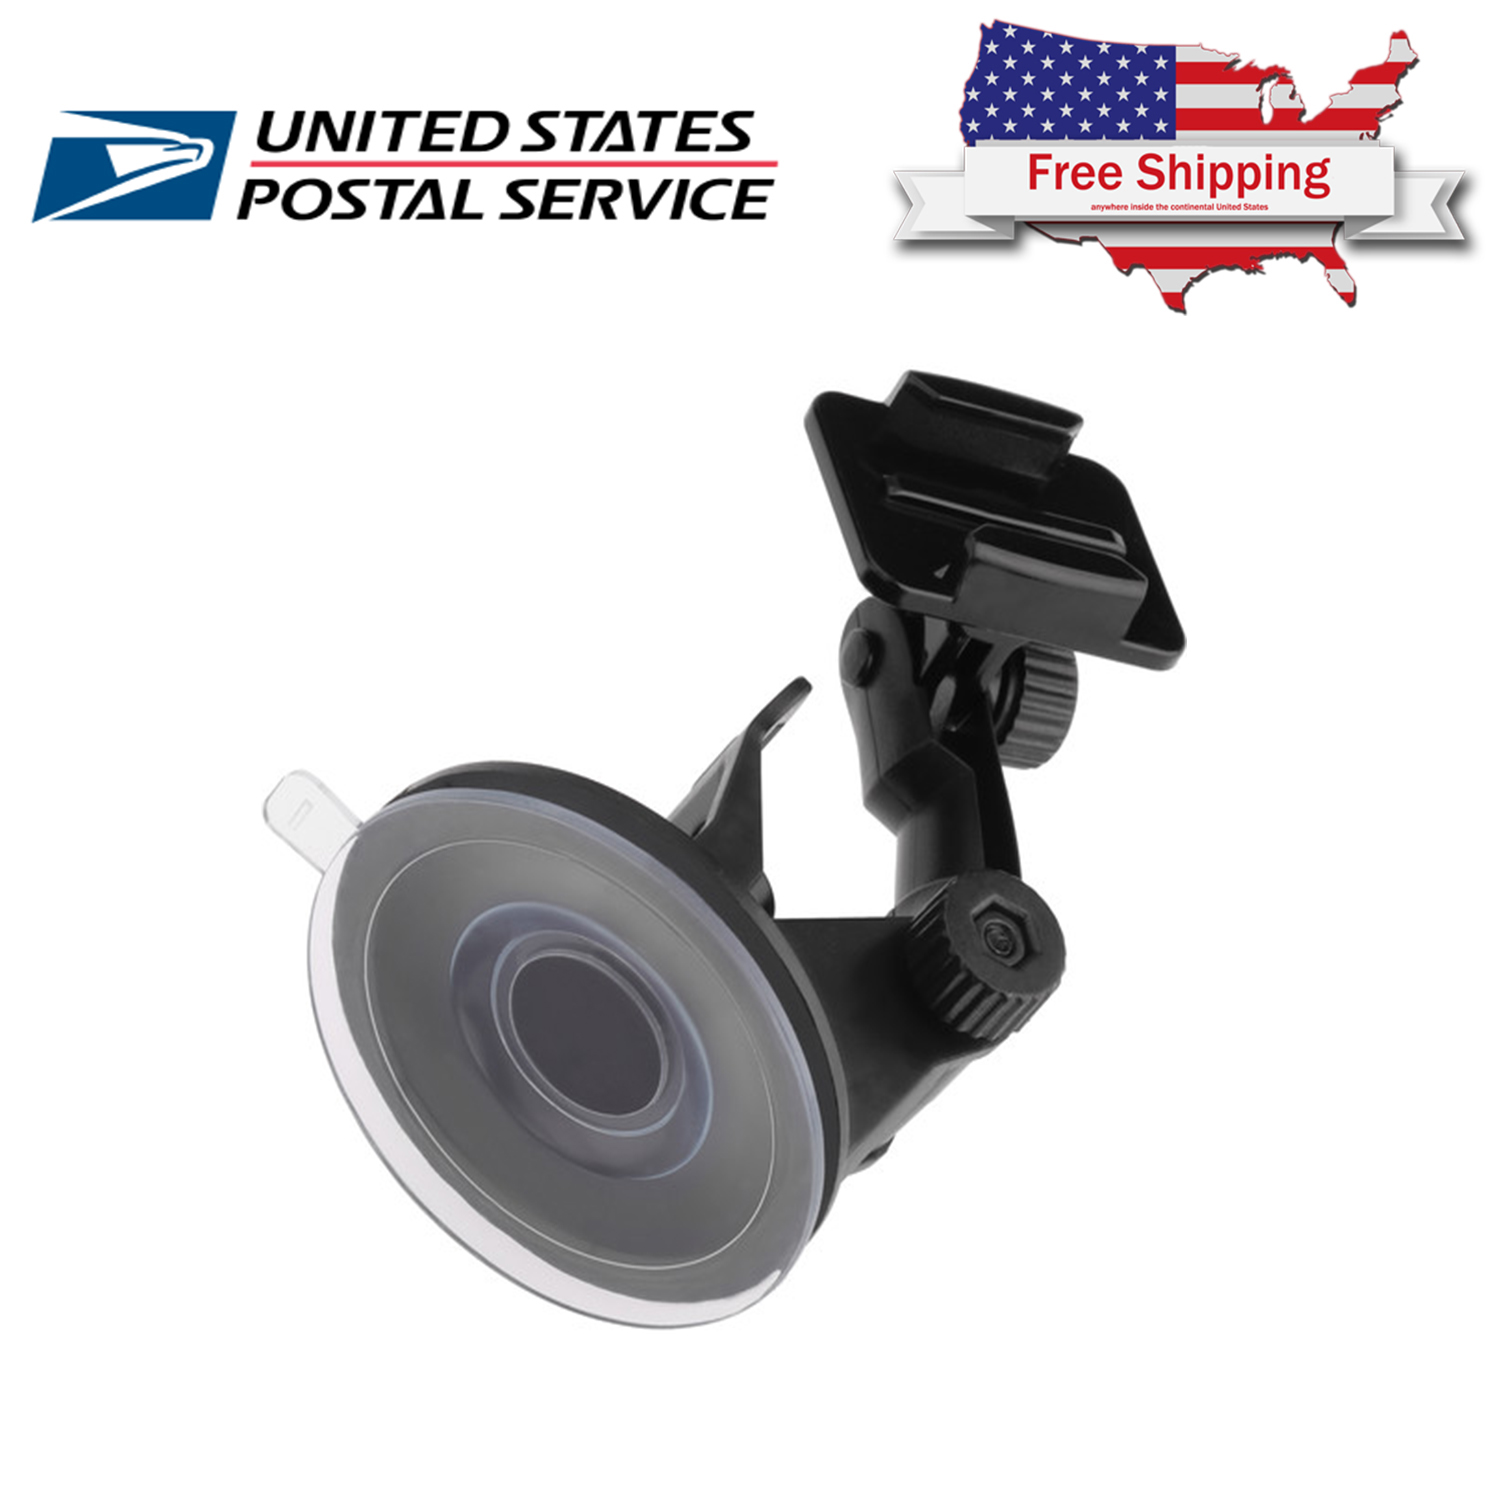 Details about Brand New Car Window Windshield Glass GoPro Suction Cup Mount  Hero Camera